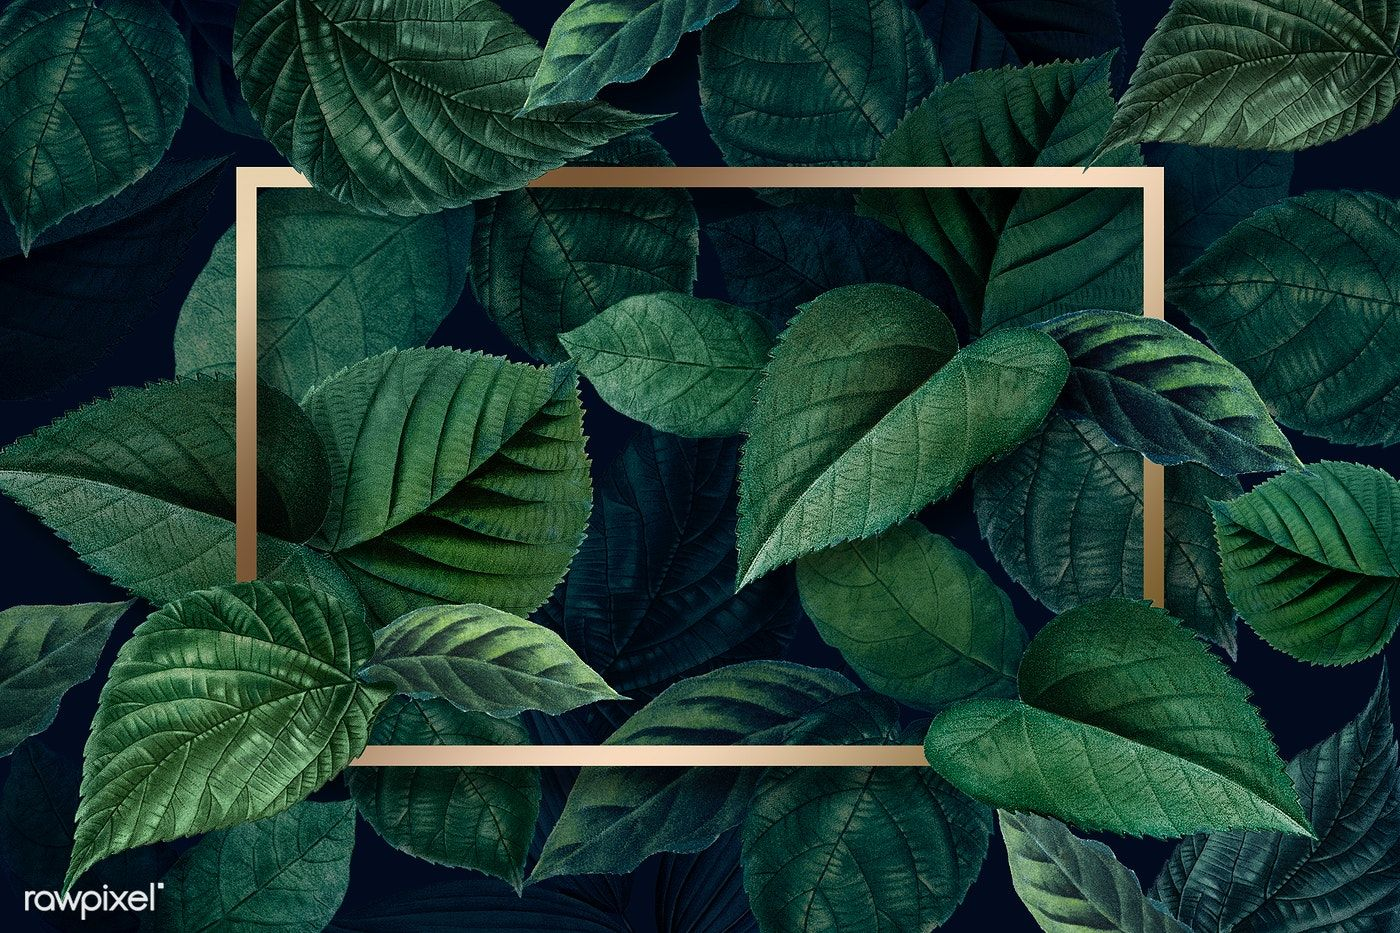 Download premium psd of Gold rectangle frame on a  metallic  green leaves